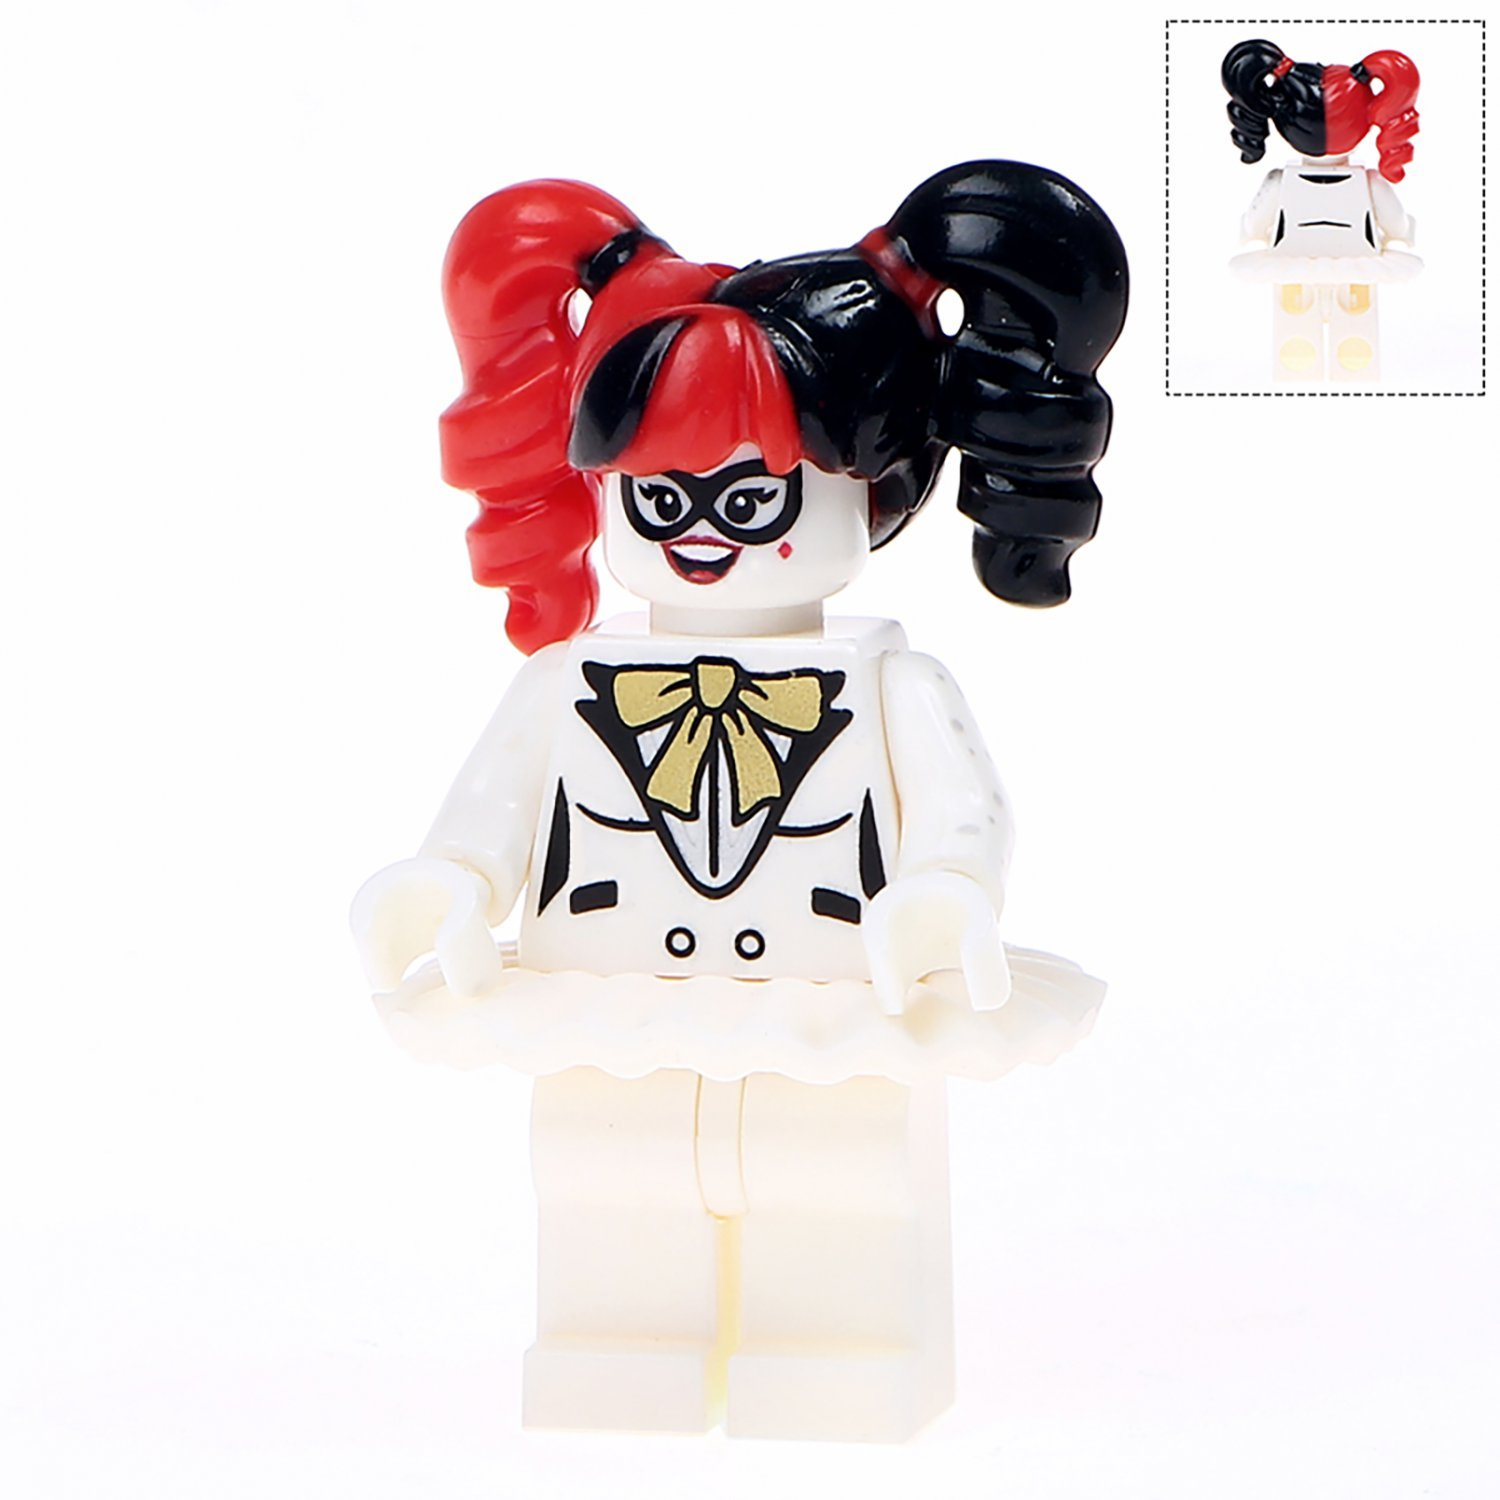 Minifigure Harley Quinn DC Comics Super Heroes Compatible Lego Building Blocks Toys